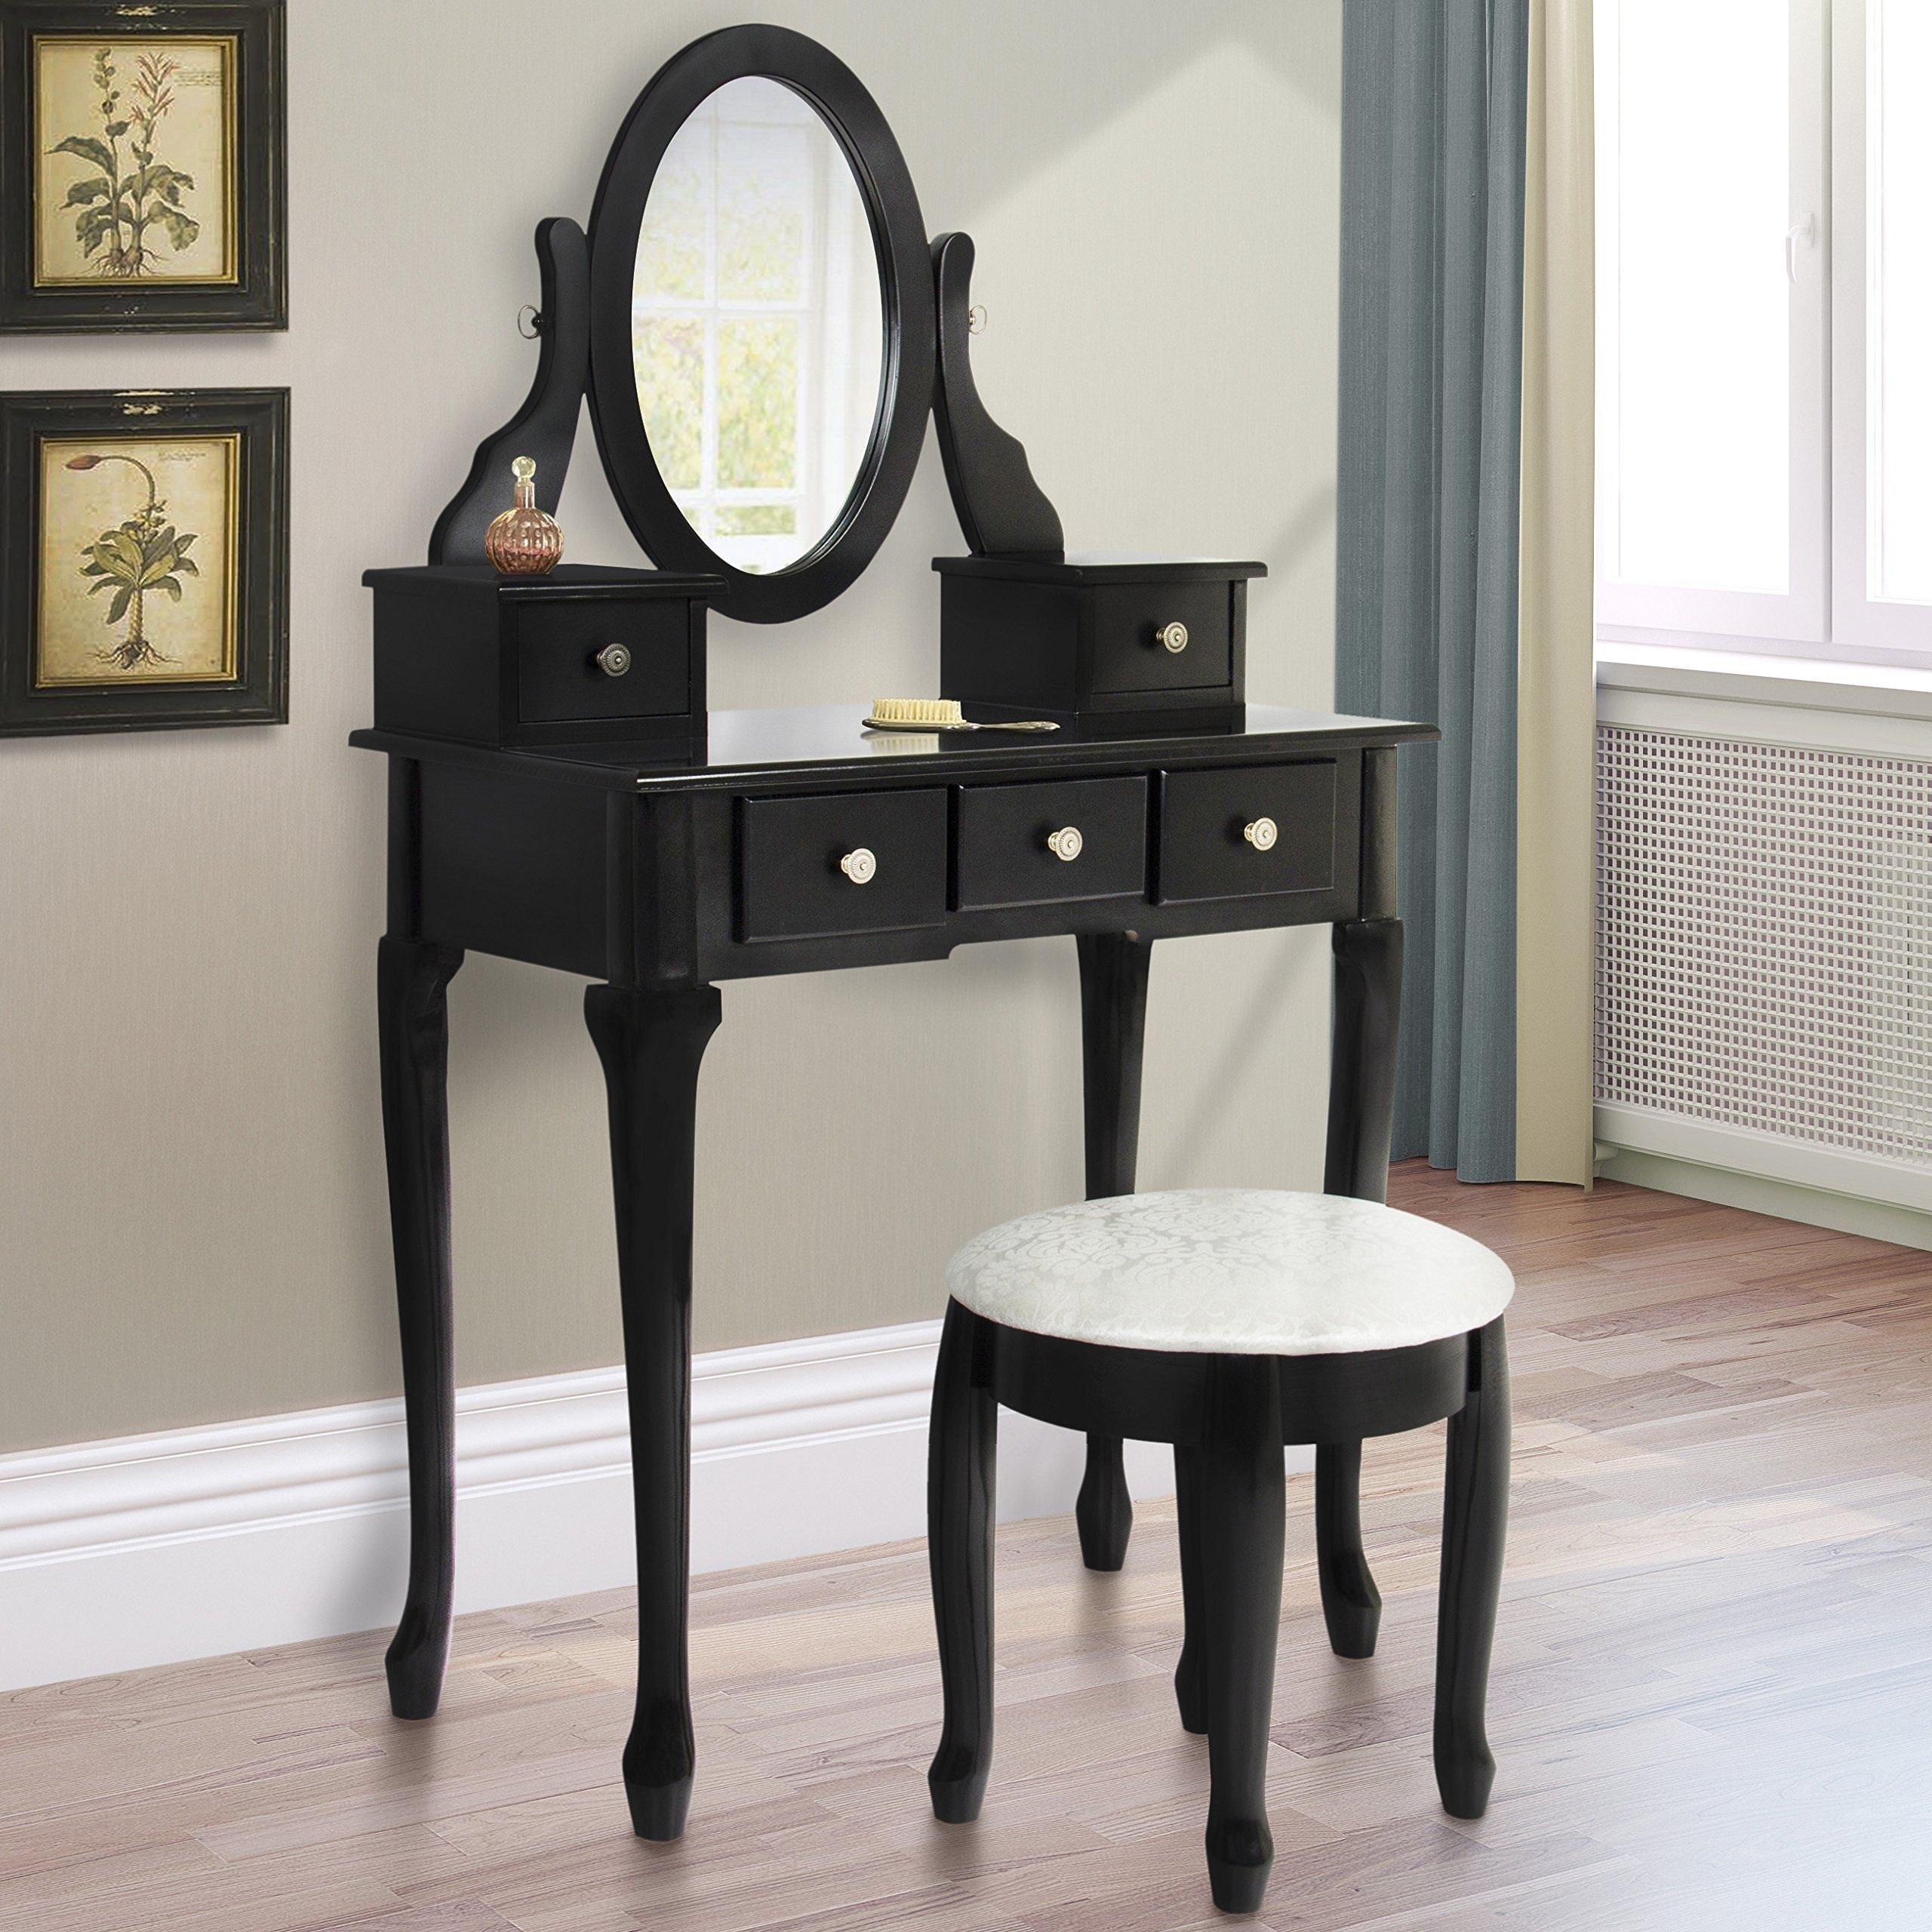 Best Choice Products Vanity Table Set Jewelry Makeup Desk Wood  Construction, Black